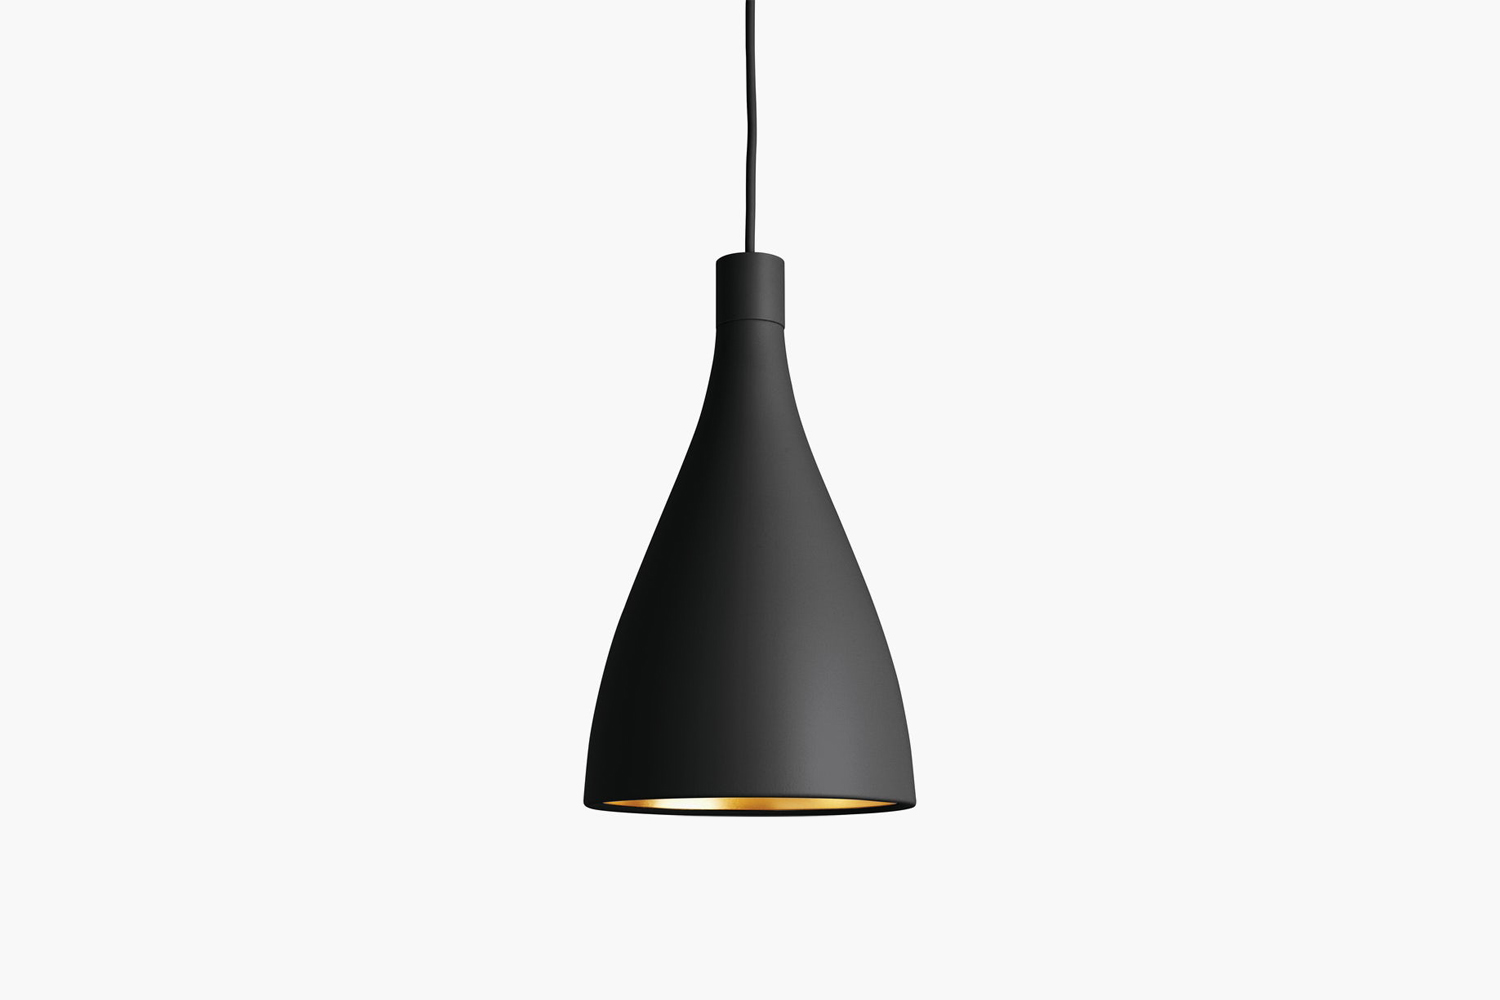 The Swell LED Pendant Light in Black is available in medium, narrow, or wide, all $5 each from Design Within Reach.